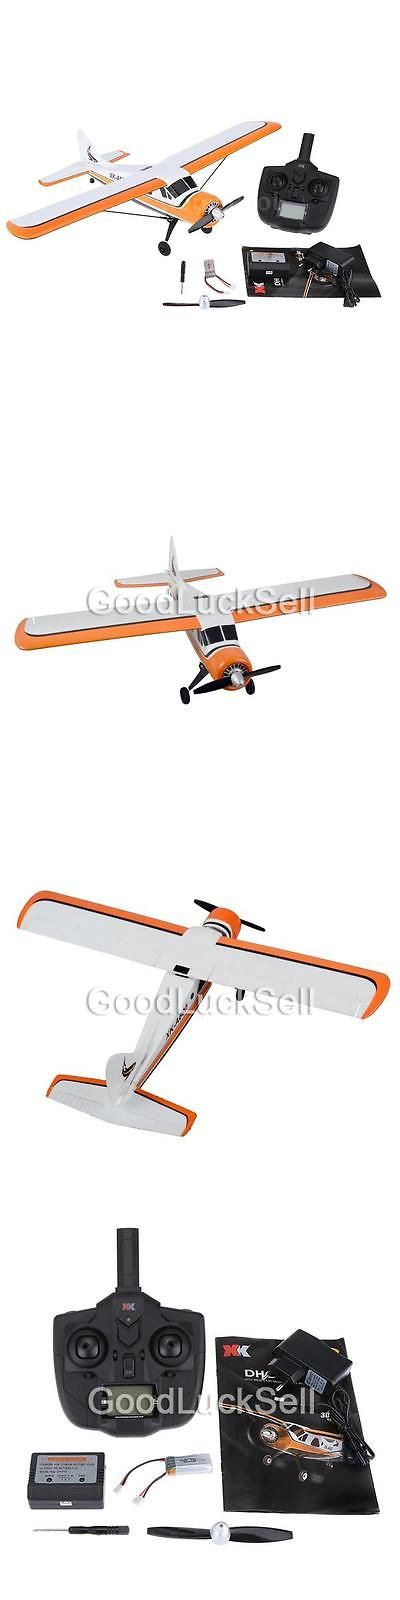 Other RC Model Vehicles and Kits 182186: Xk Dhc-2 A600 5Ch 2.4G 3D6g System Brushless Motor Rc Plane Airplane In Us Local -> BUY IT NOW ONLY: $85.55 on eBay!